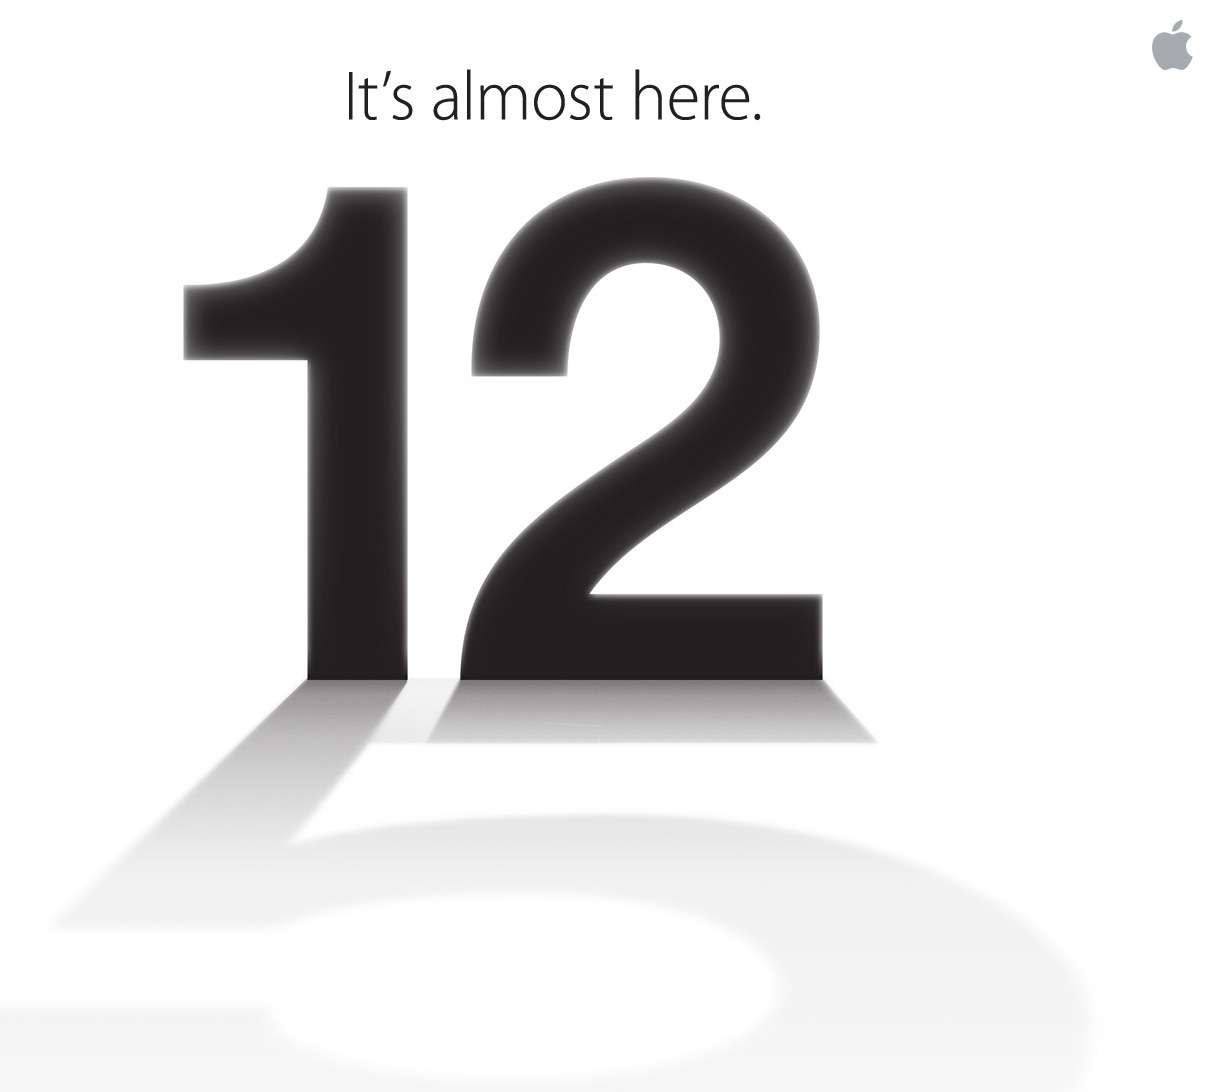 September 12th: It's almost here Apple invitation